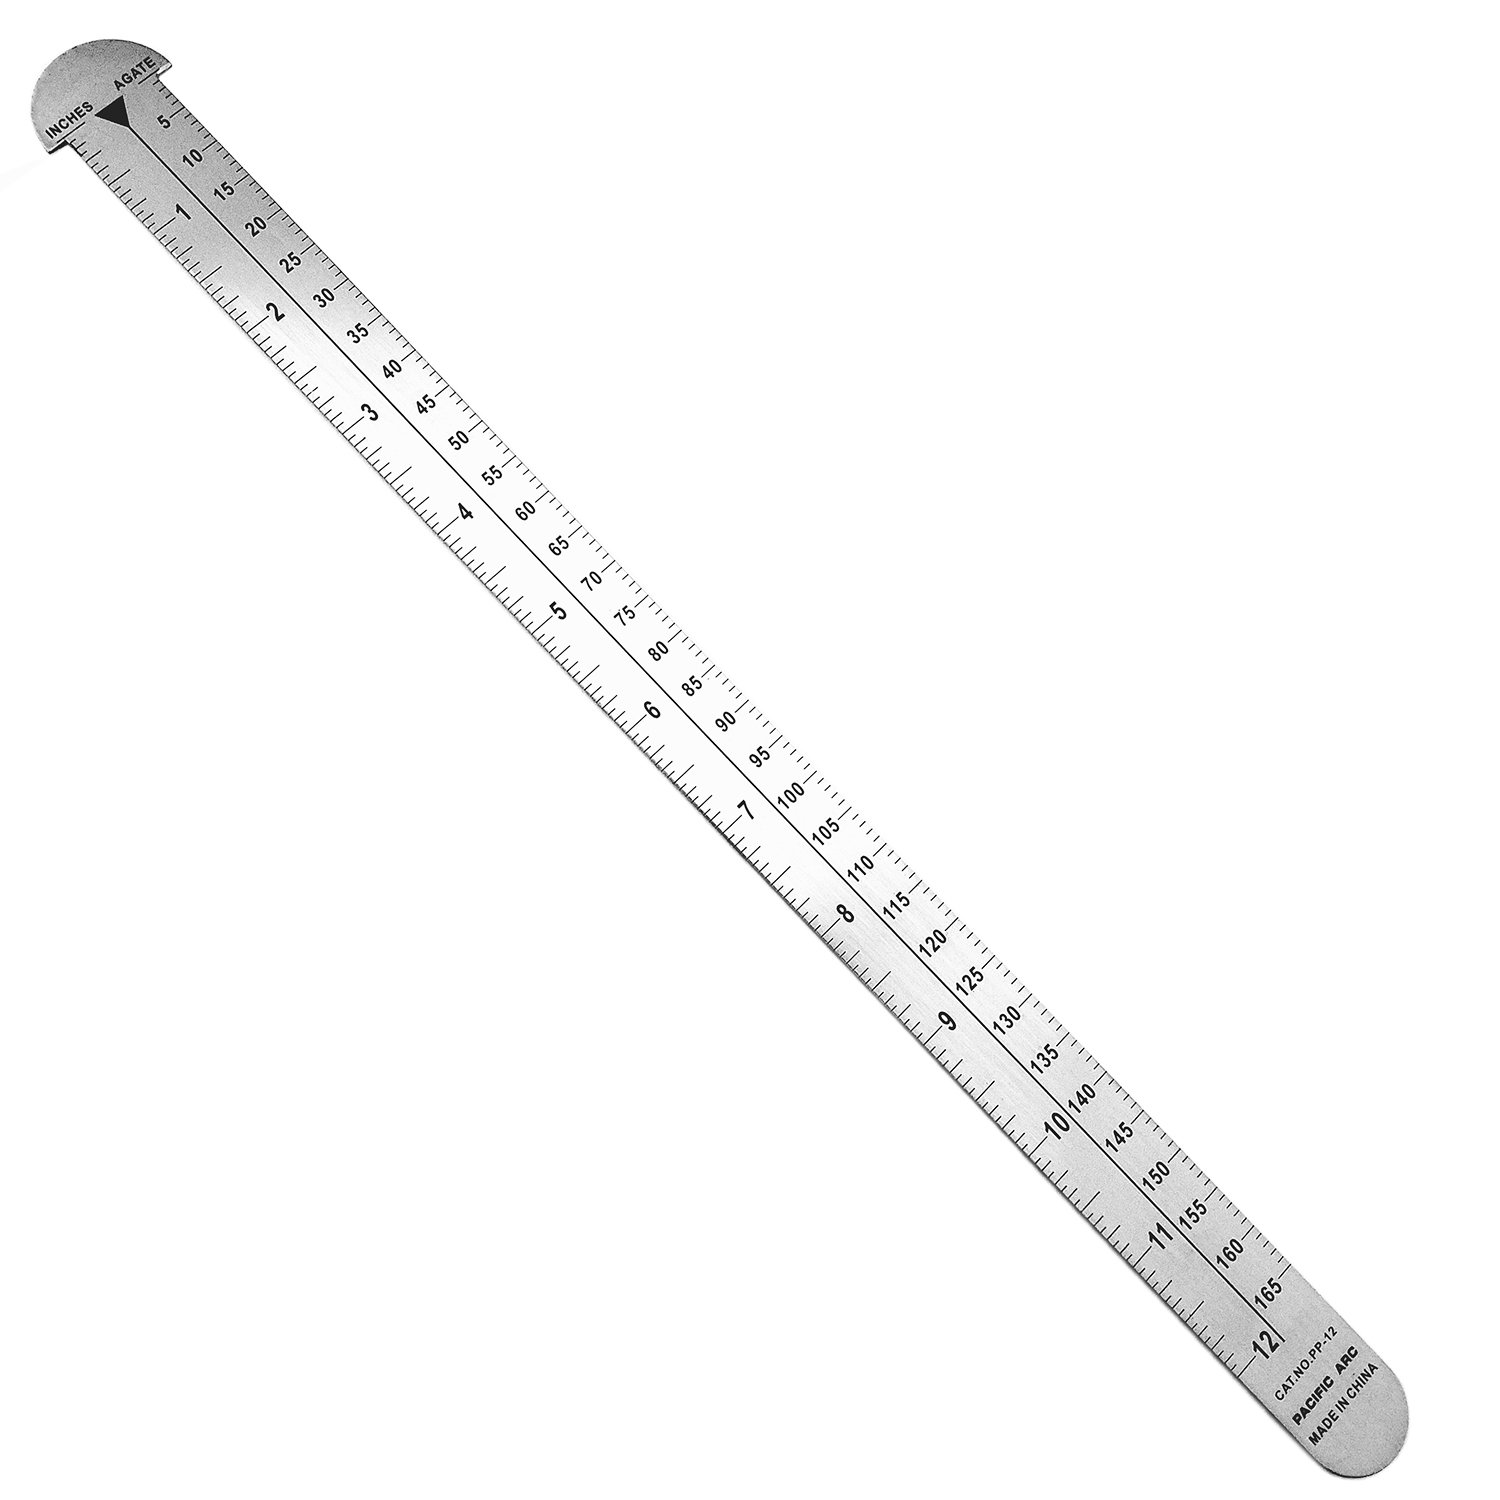 18'' Stainless Steel Pica Pole Ruler: INCH and PICAS